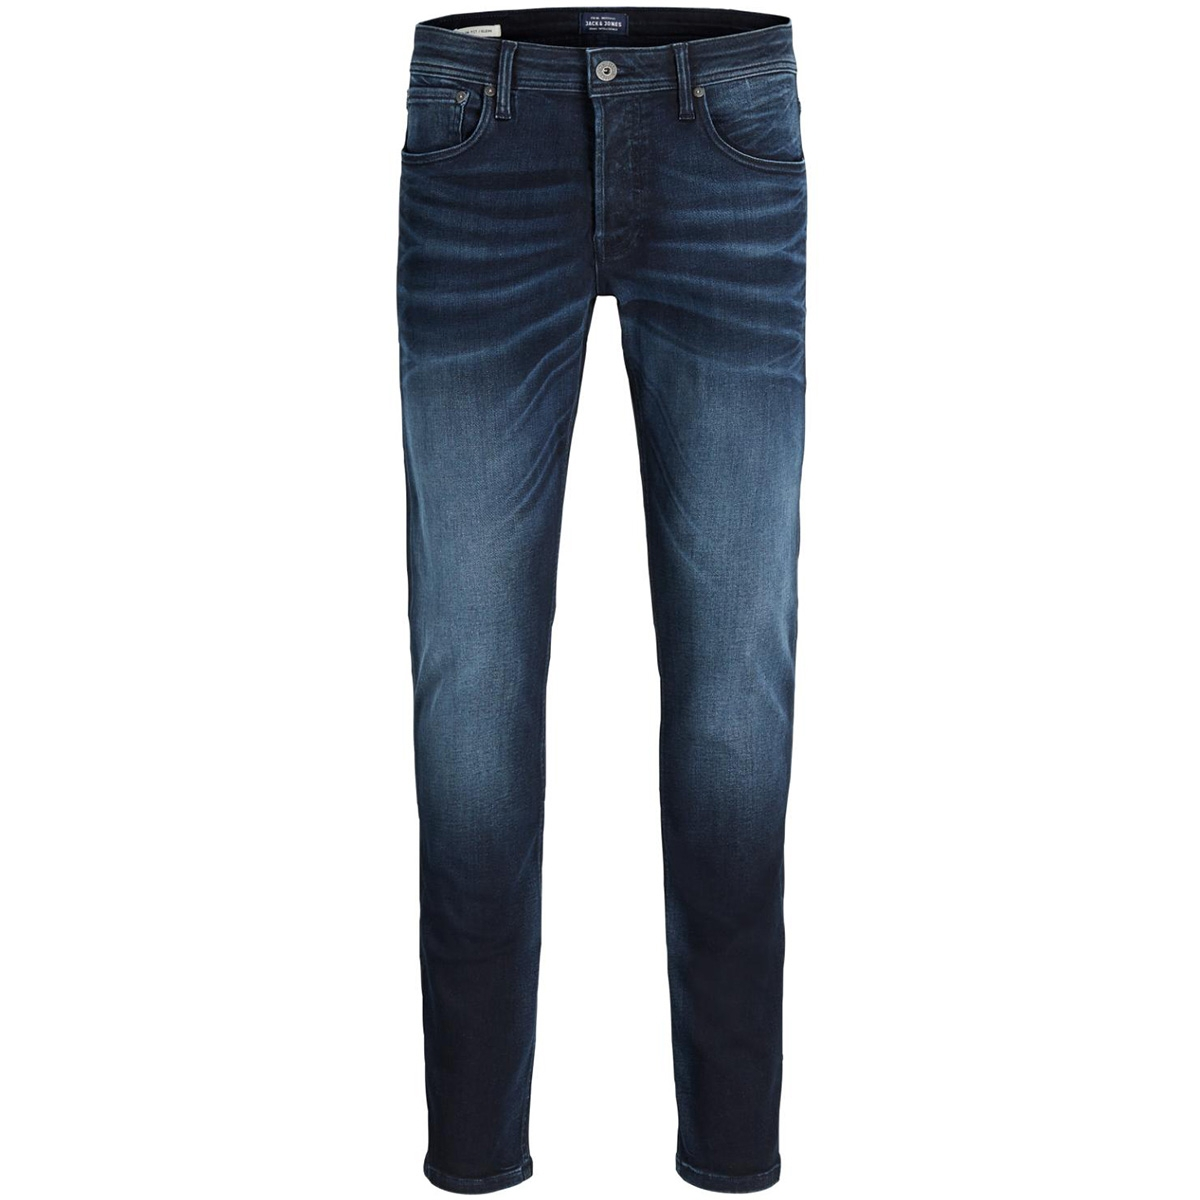 jjiglenn jjoriginal jos 105 50sps 12131782 jack & jones jeans blue denim